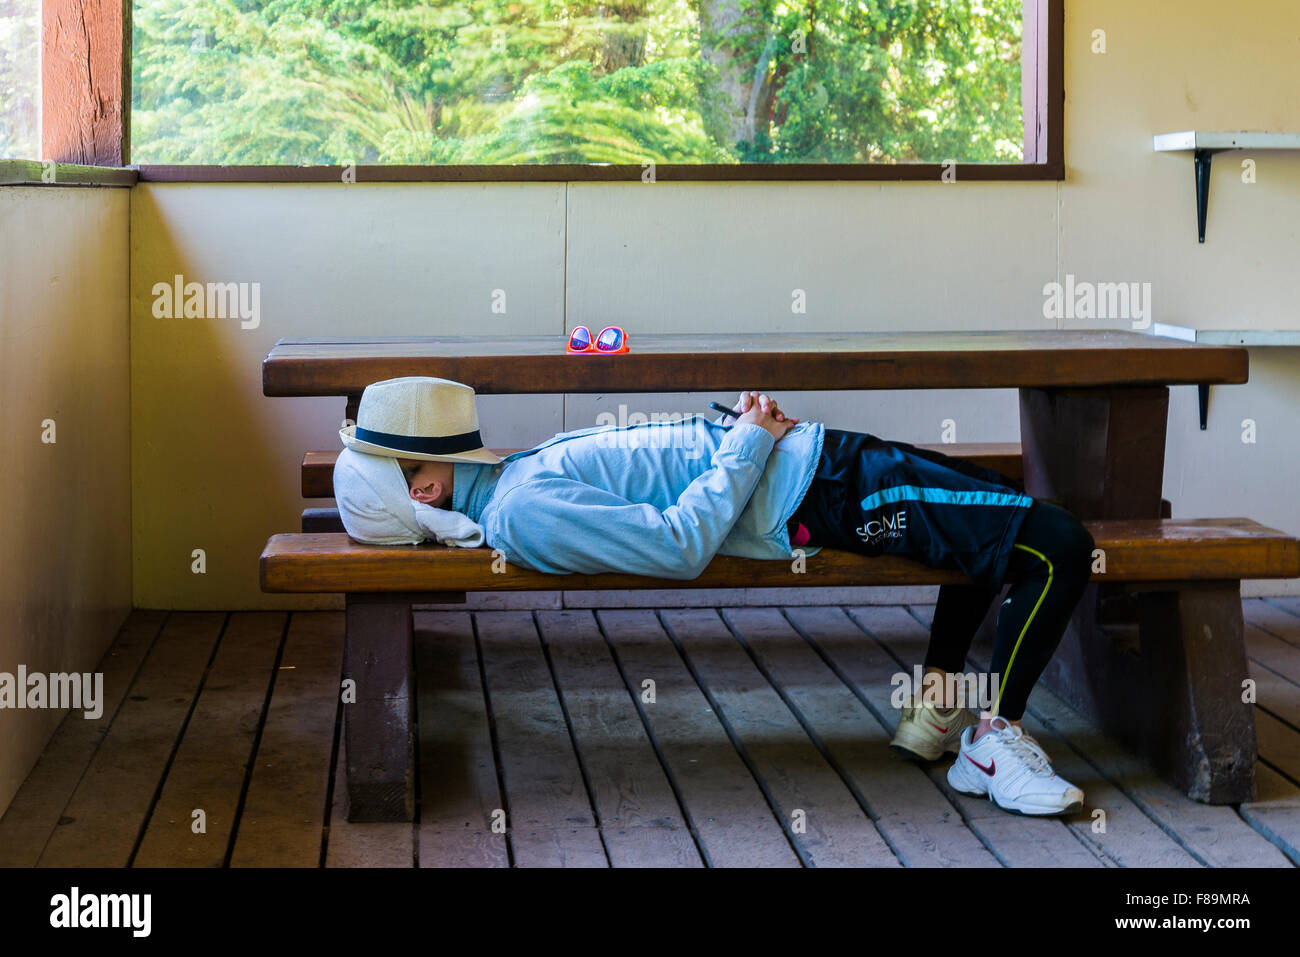 Young man snoozing on a picnic table bench - Stock Image